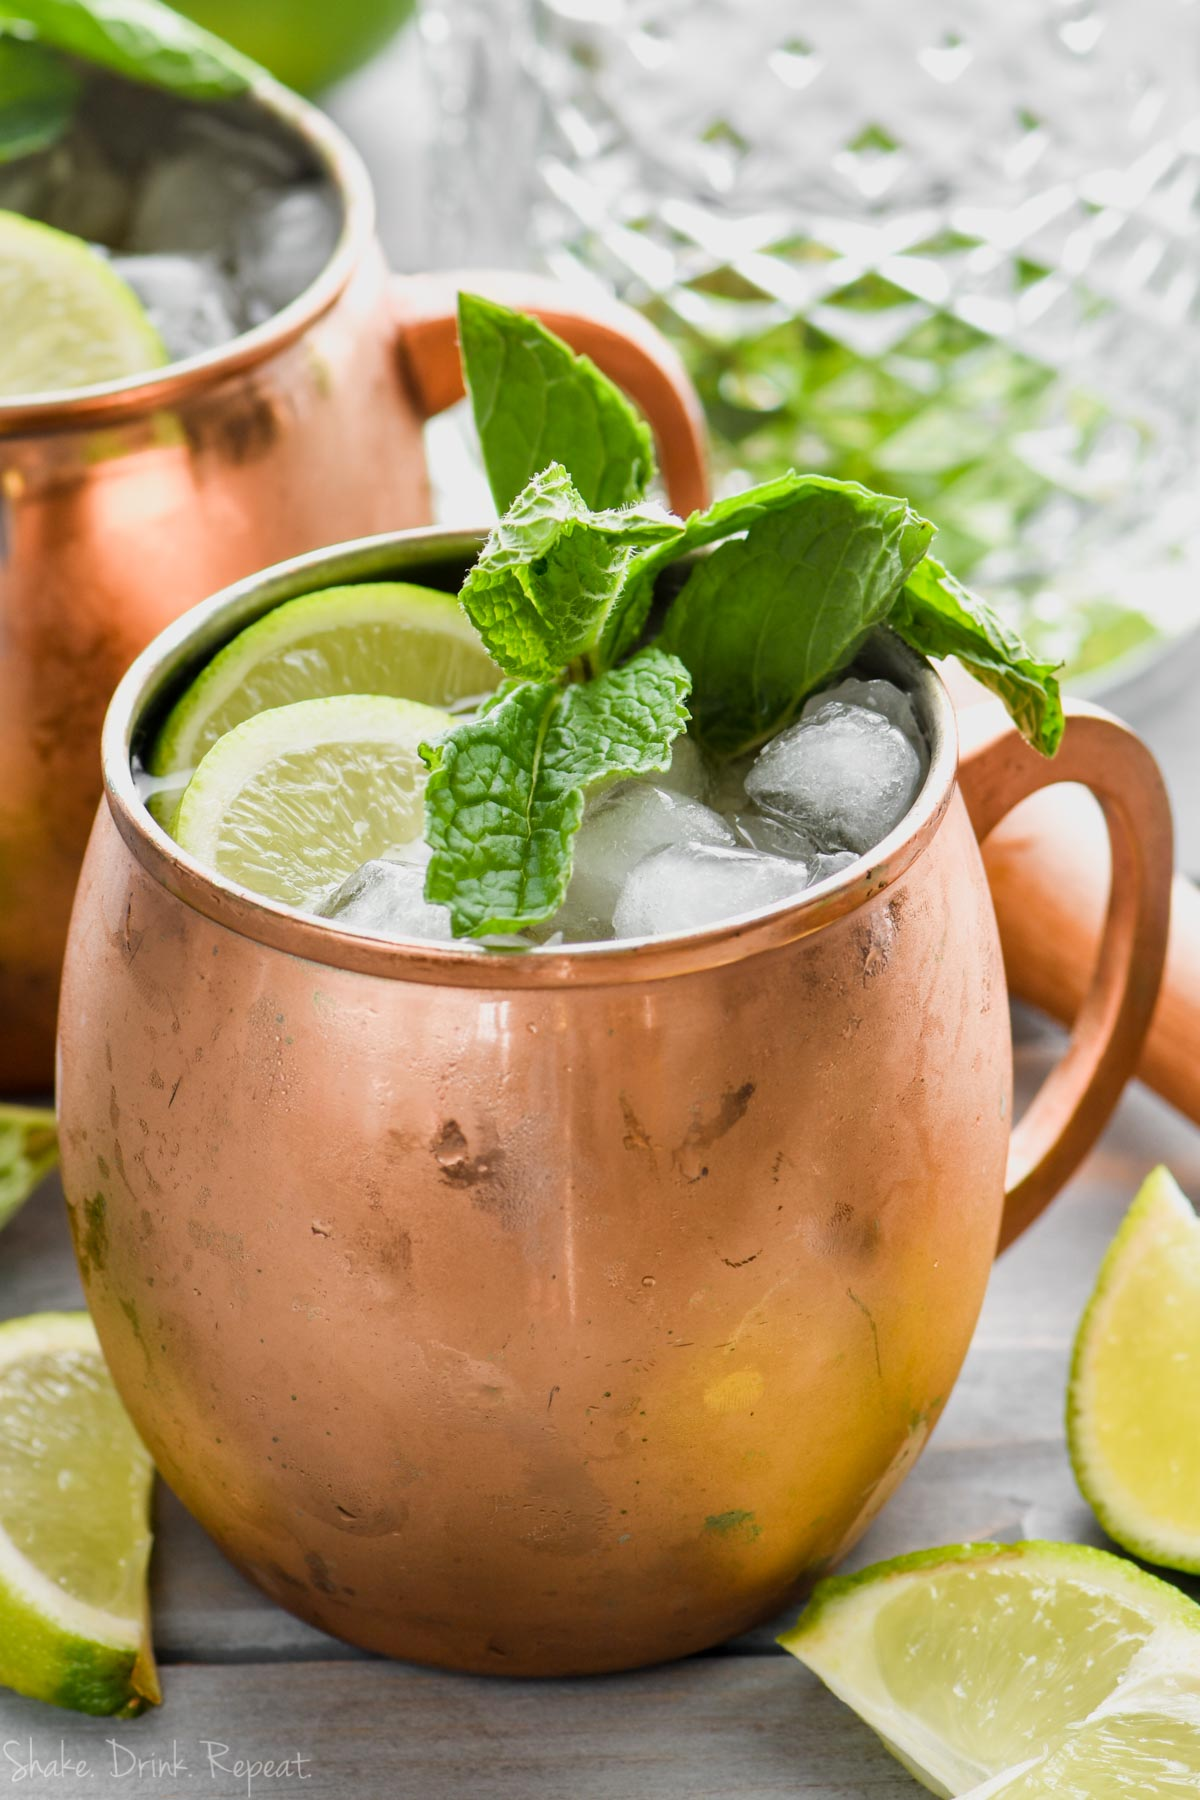 How Do You Make A Moscow Mule Drink